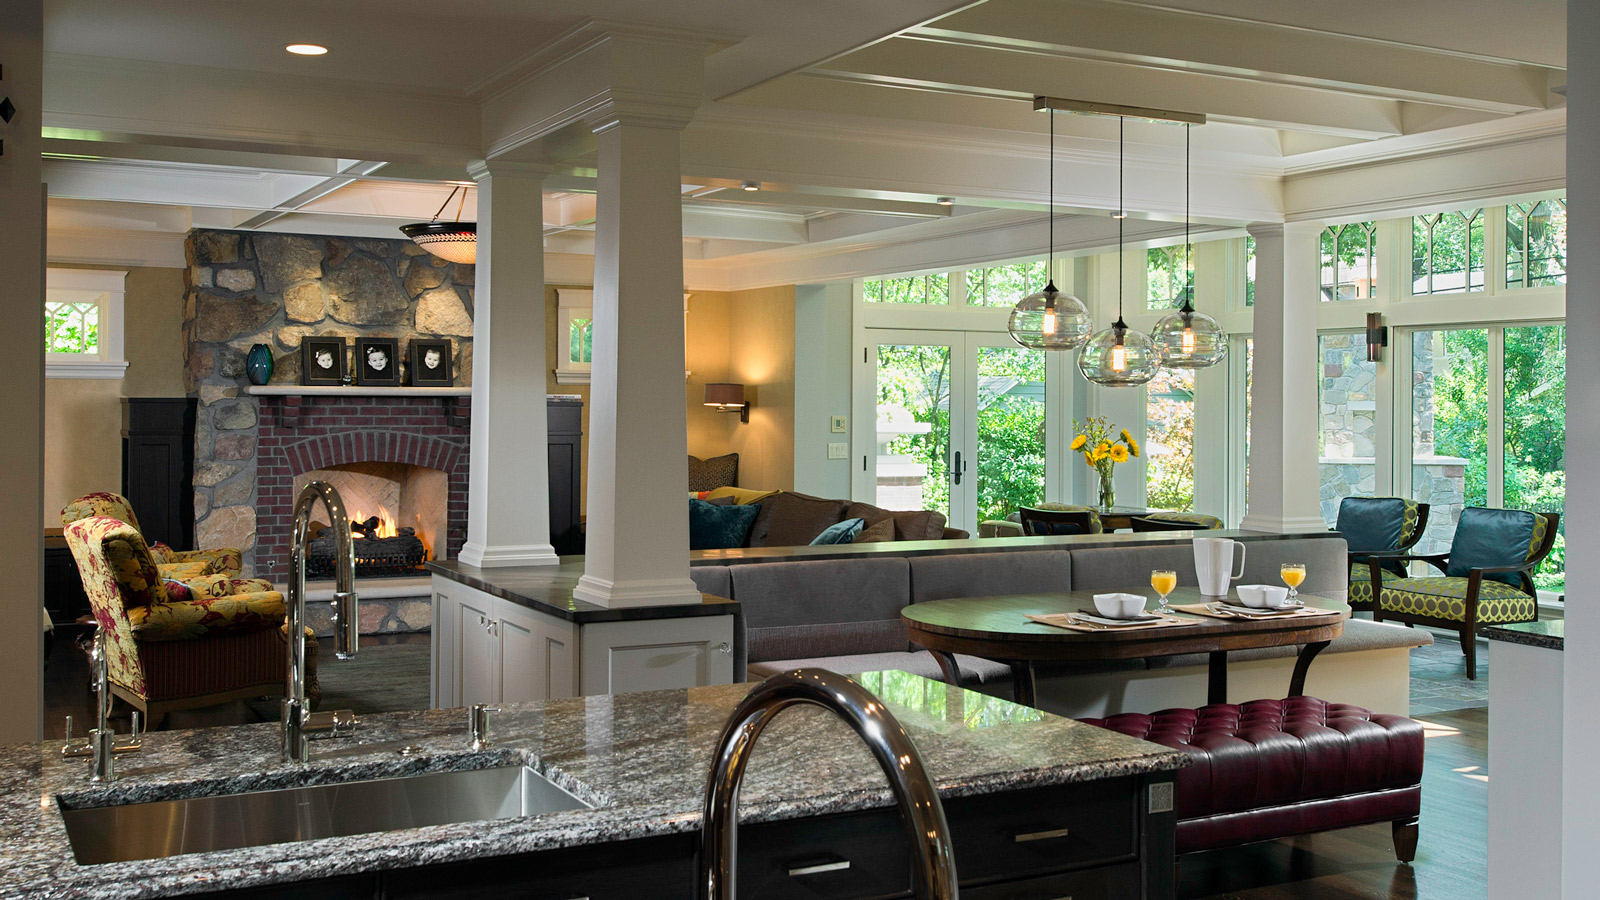 1600-x-900-Unique-and-Detailed-Winnetka-Kitchen-drury-design2